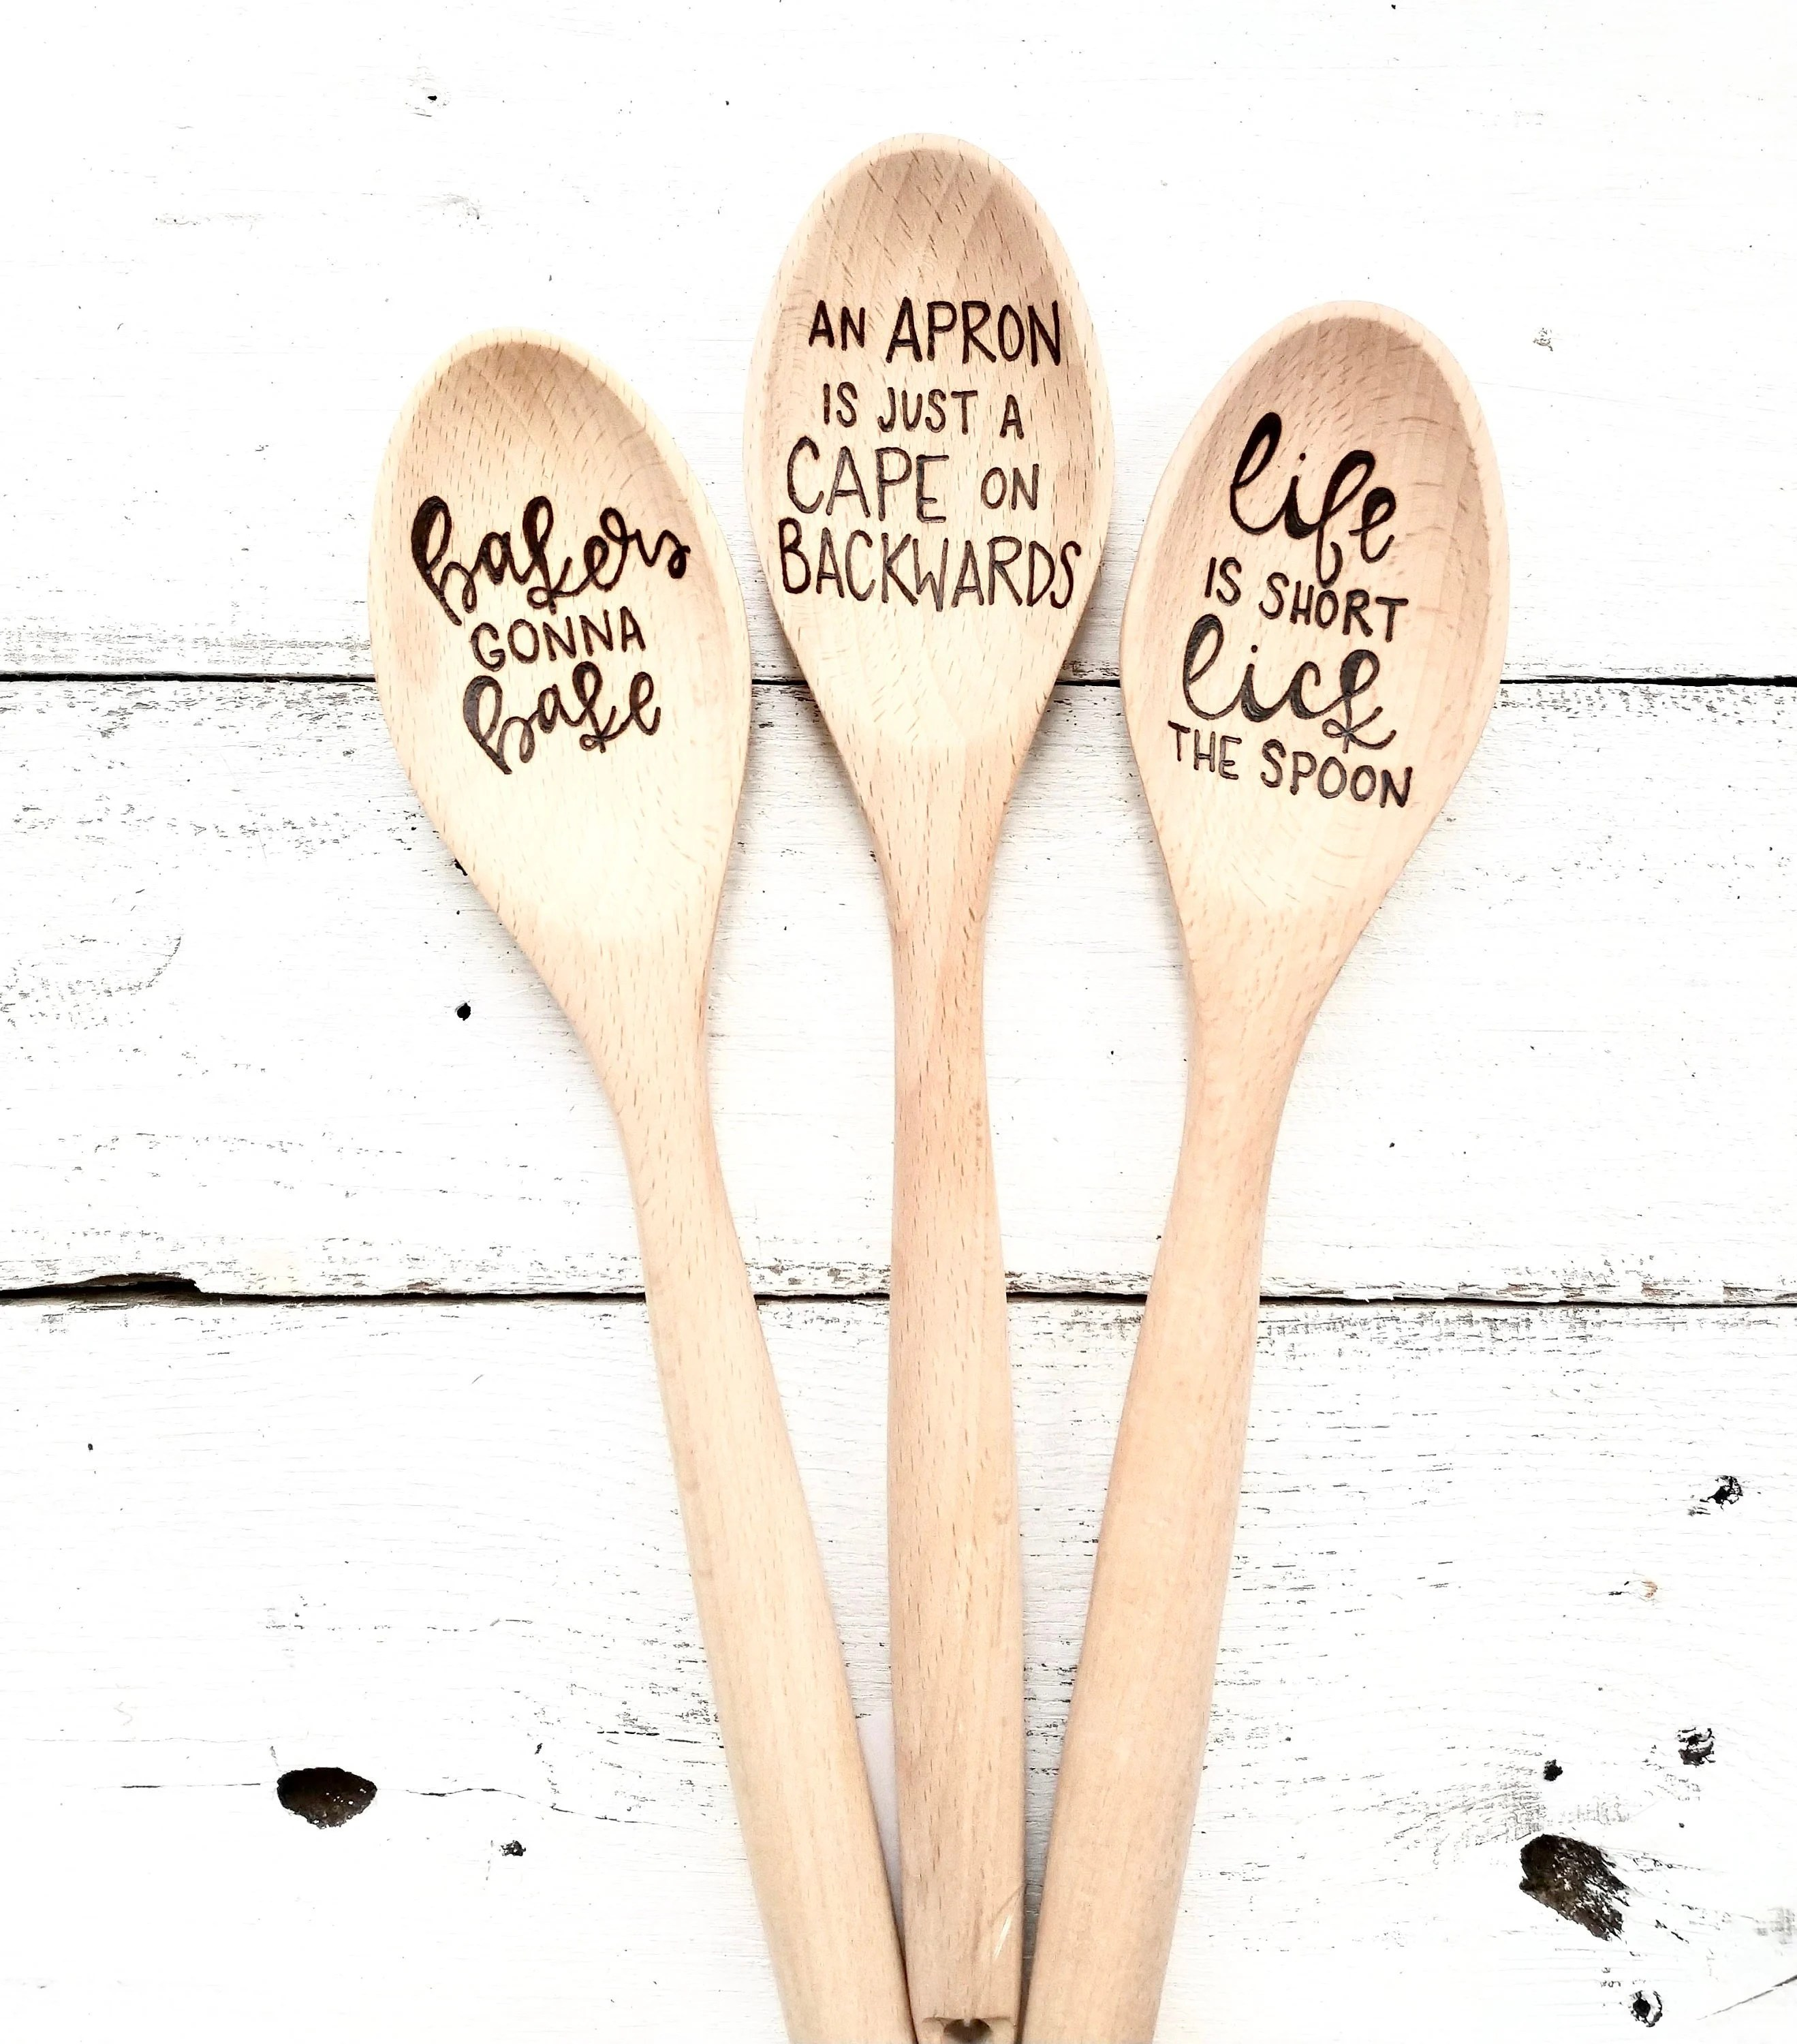 kitchen spoons decorative ceramic tiles custom personalized gifts wood etsy image 0